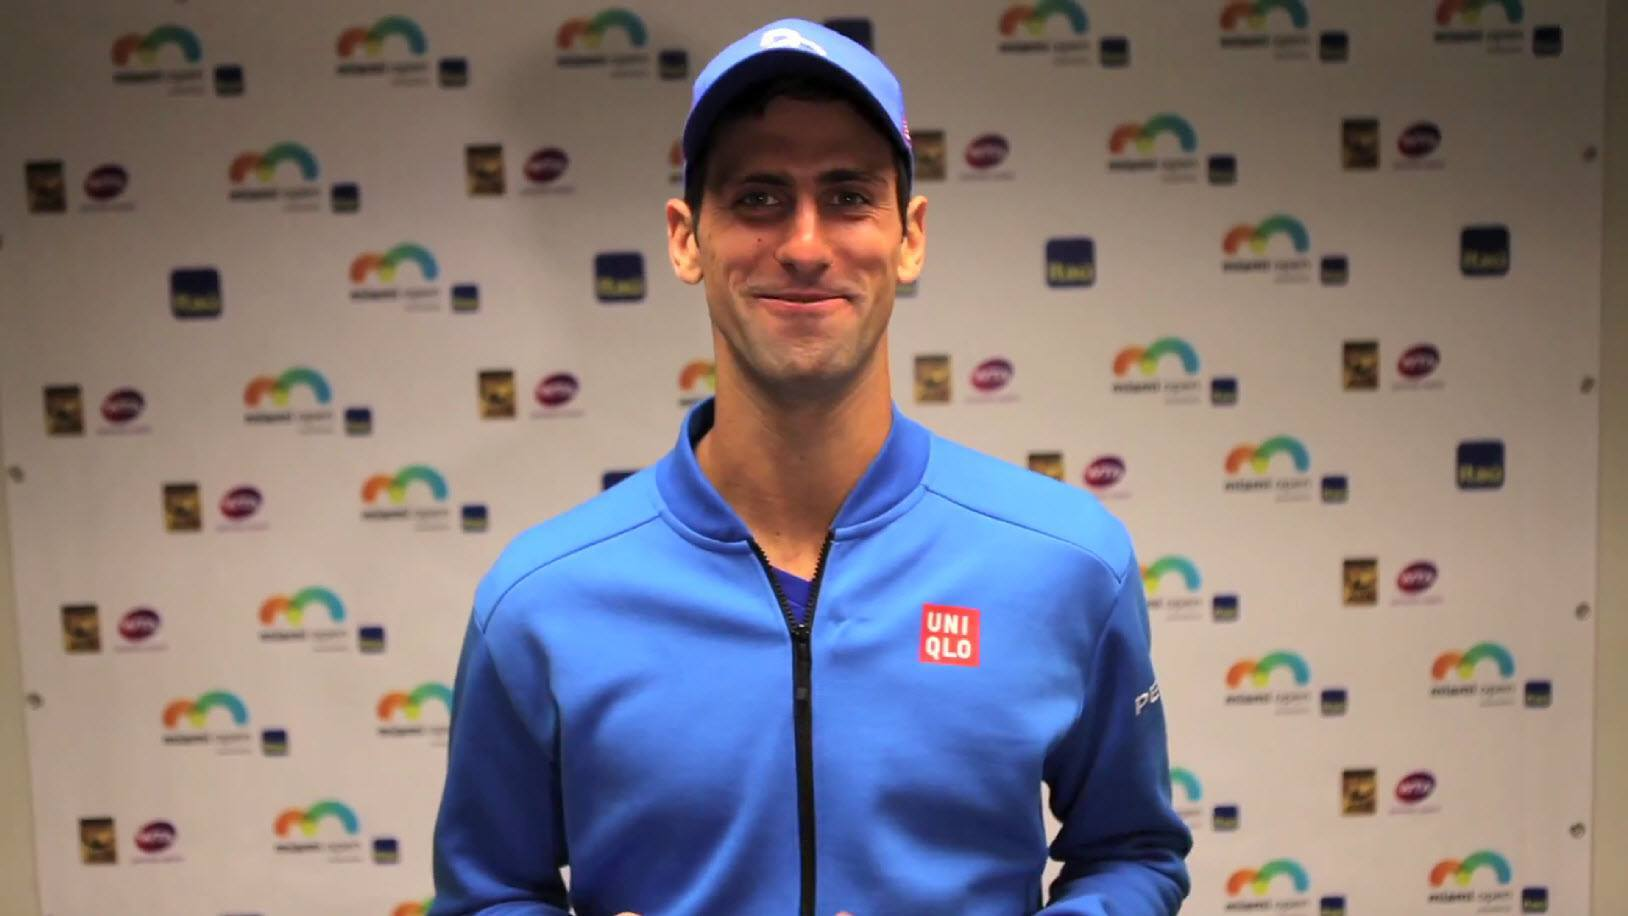 novak djokovic answers fans weird questions 2015 images